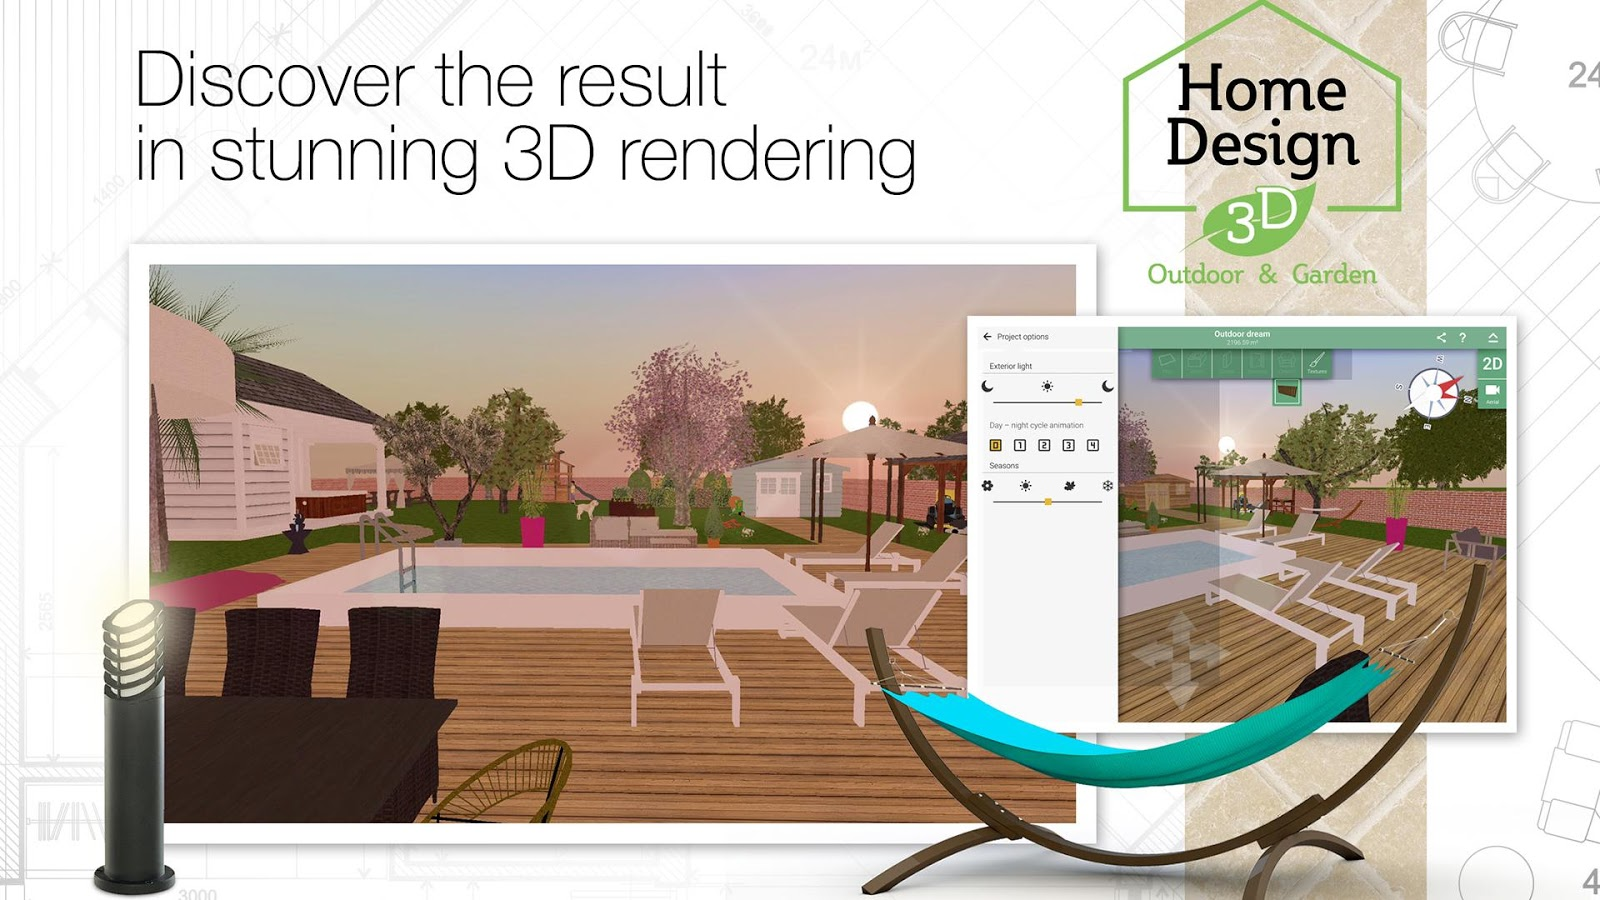 Home Design 3D Outdoor/Garden- screenshot